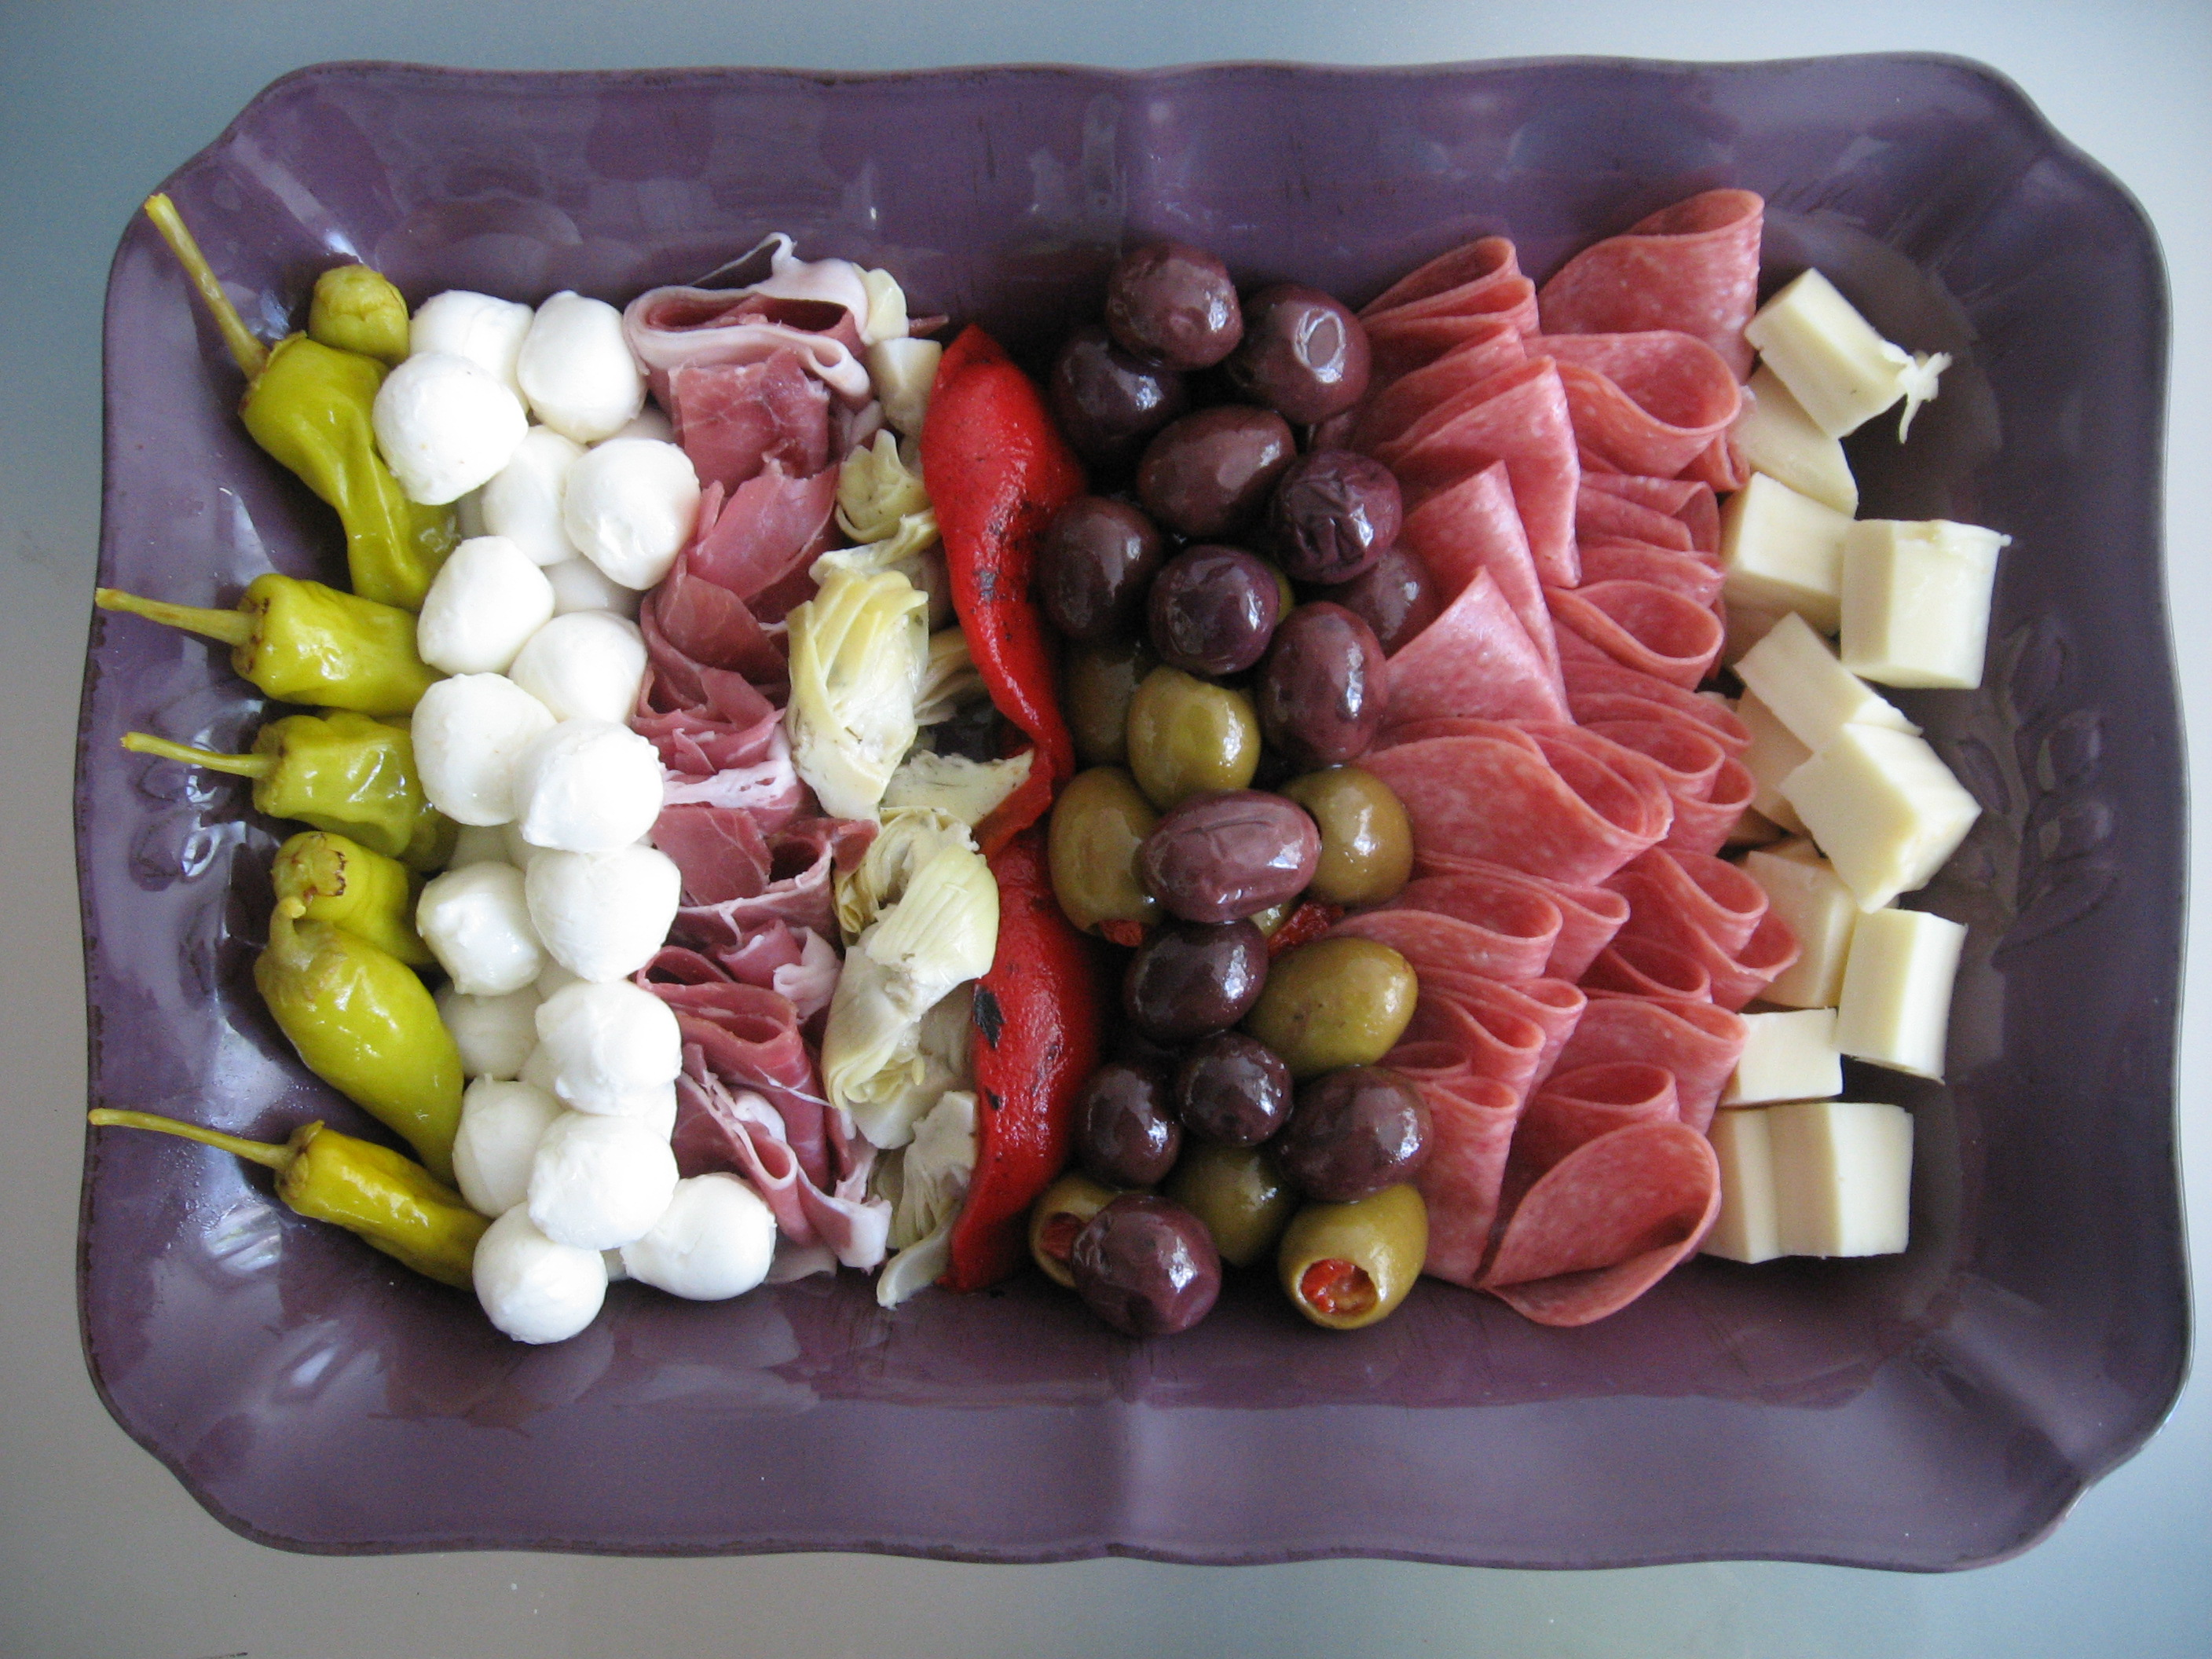 Anatomy Of An Antipasti Platter Or How To Set The Bar Impossibly Low Tasty Kitchen A Happy Recipe Community